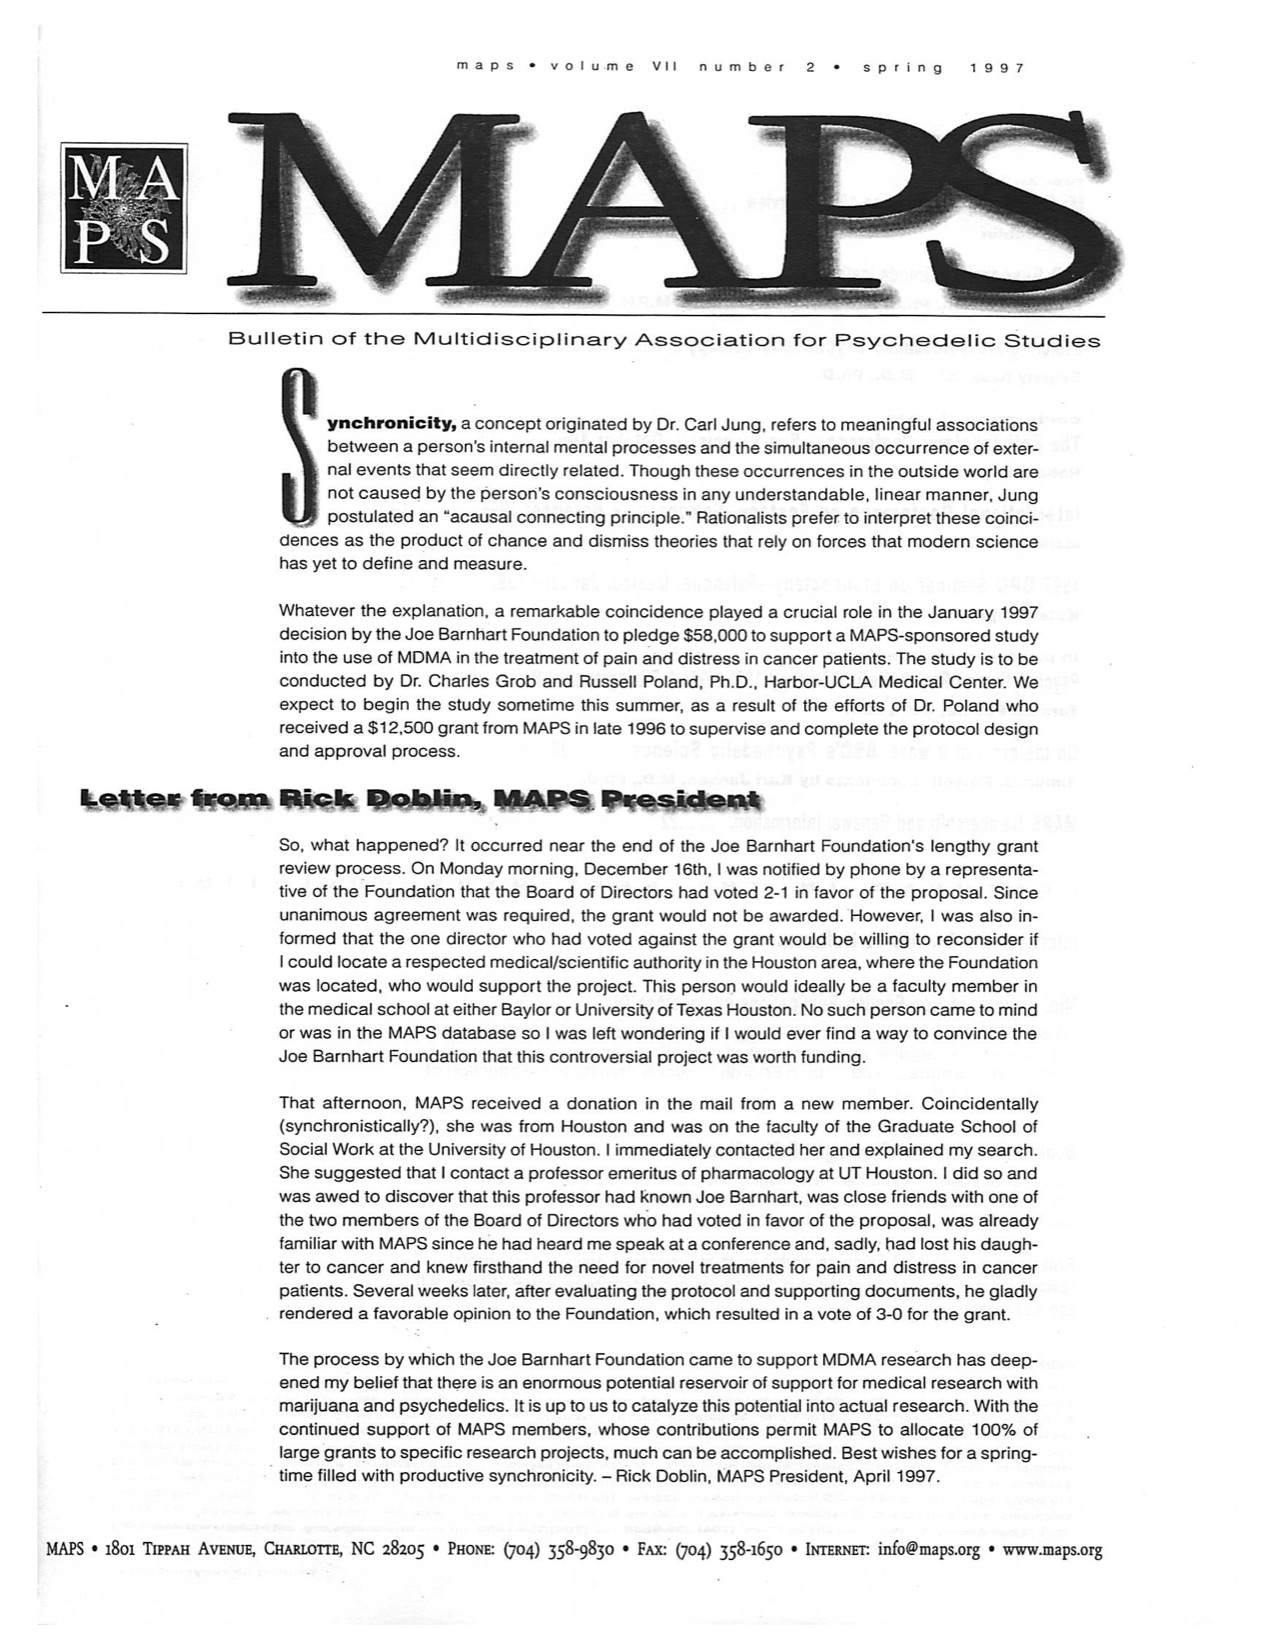 MAPS Bulletin Spring 1997 Vol. 07, No. 2